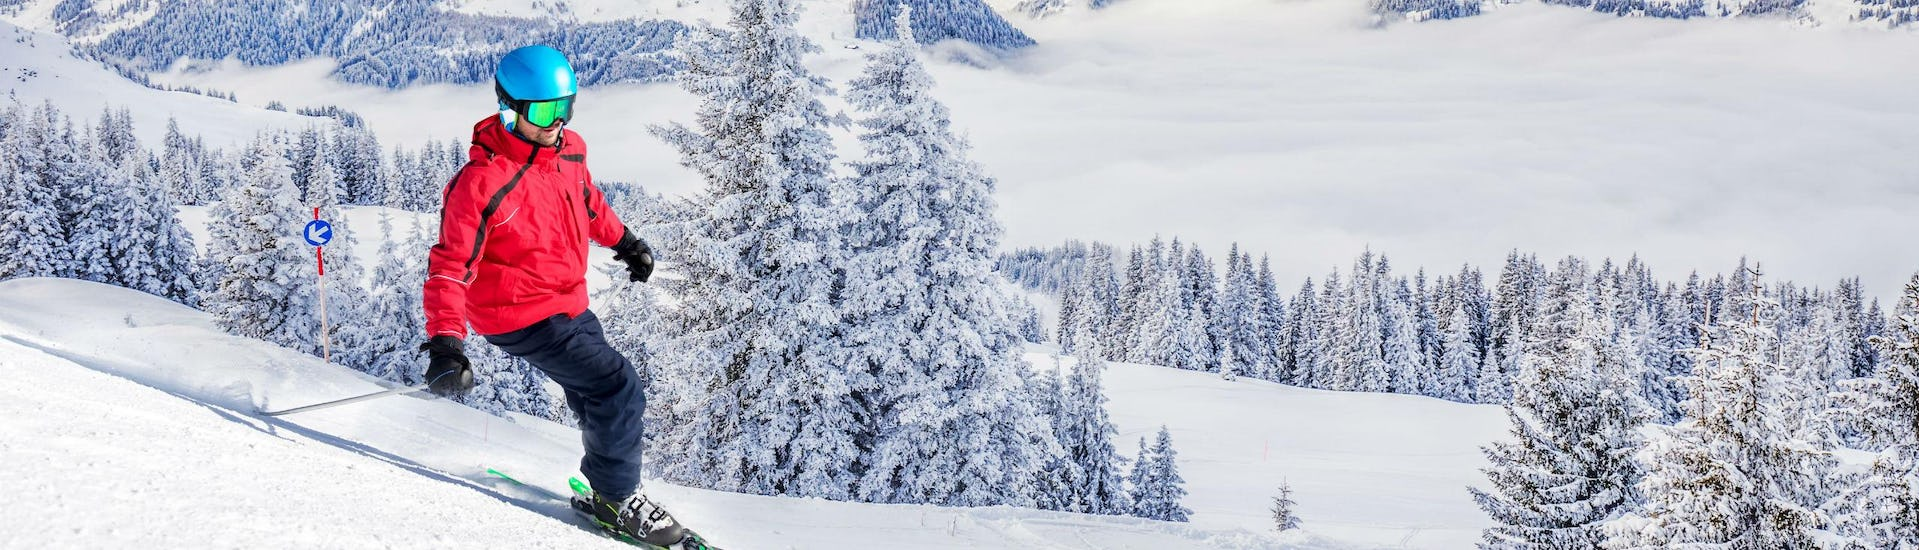 A skier is skiing down a ski slope with fresh powder snow and a stunning view of the surrounding Alps in the ski resort of Kitzbühel, where local ski schools offer a variety of ski lessons for anyone who wants to learn to ski.